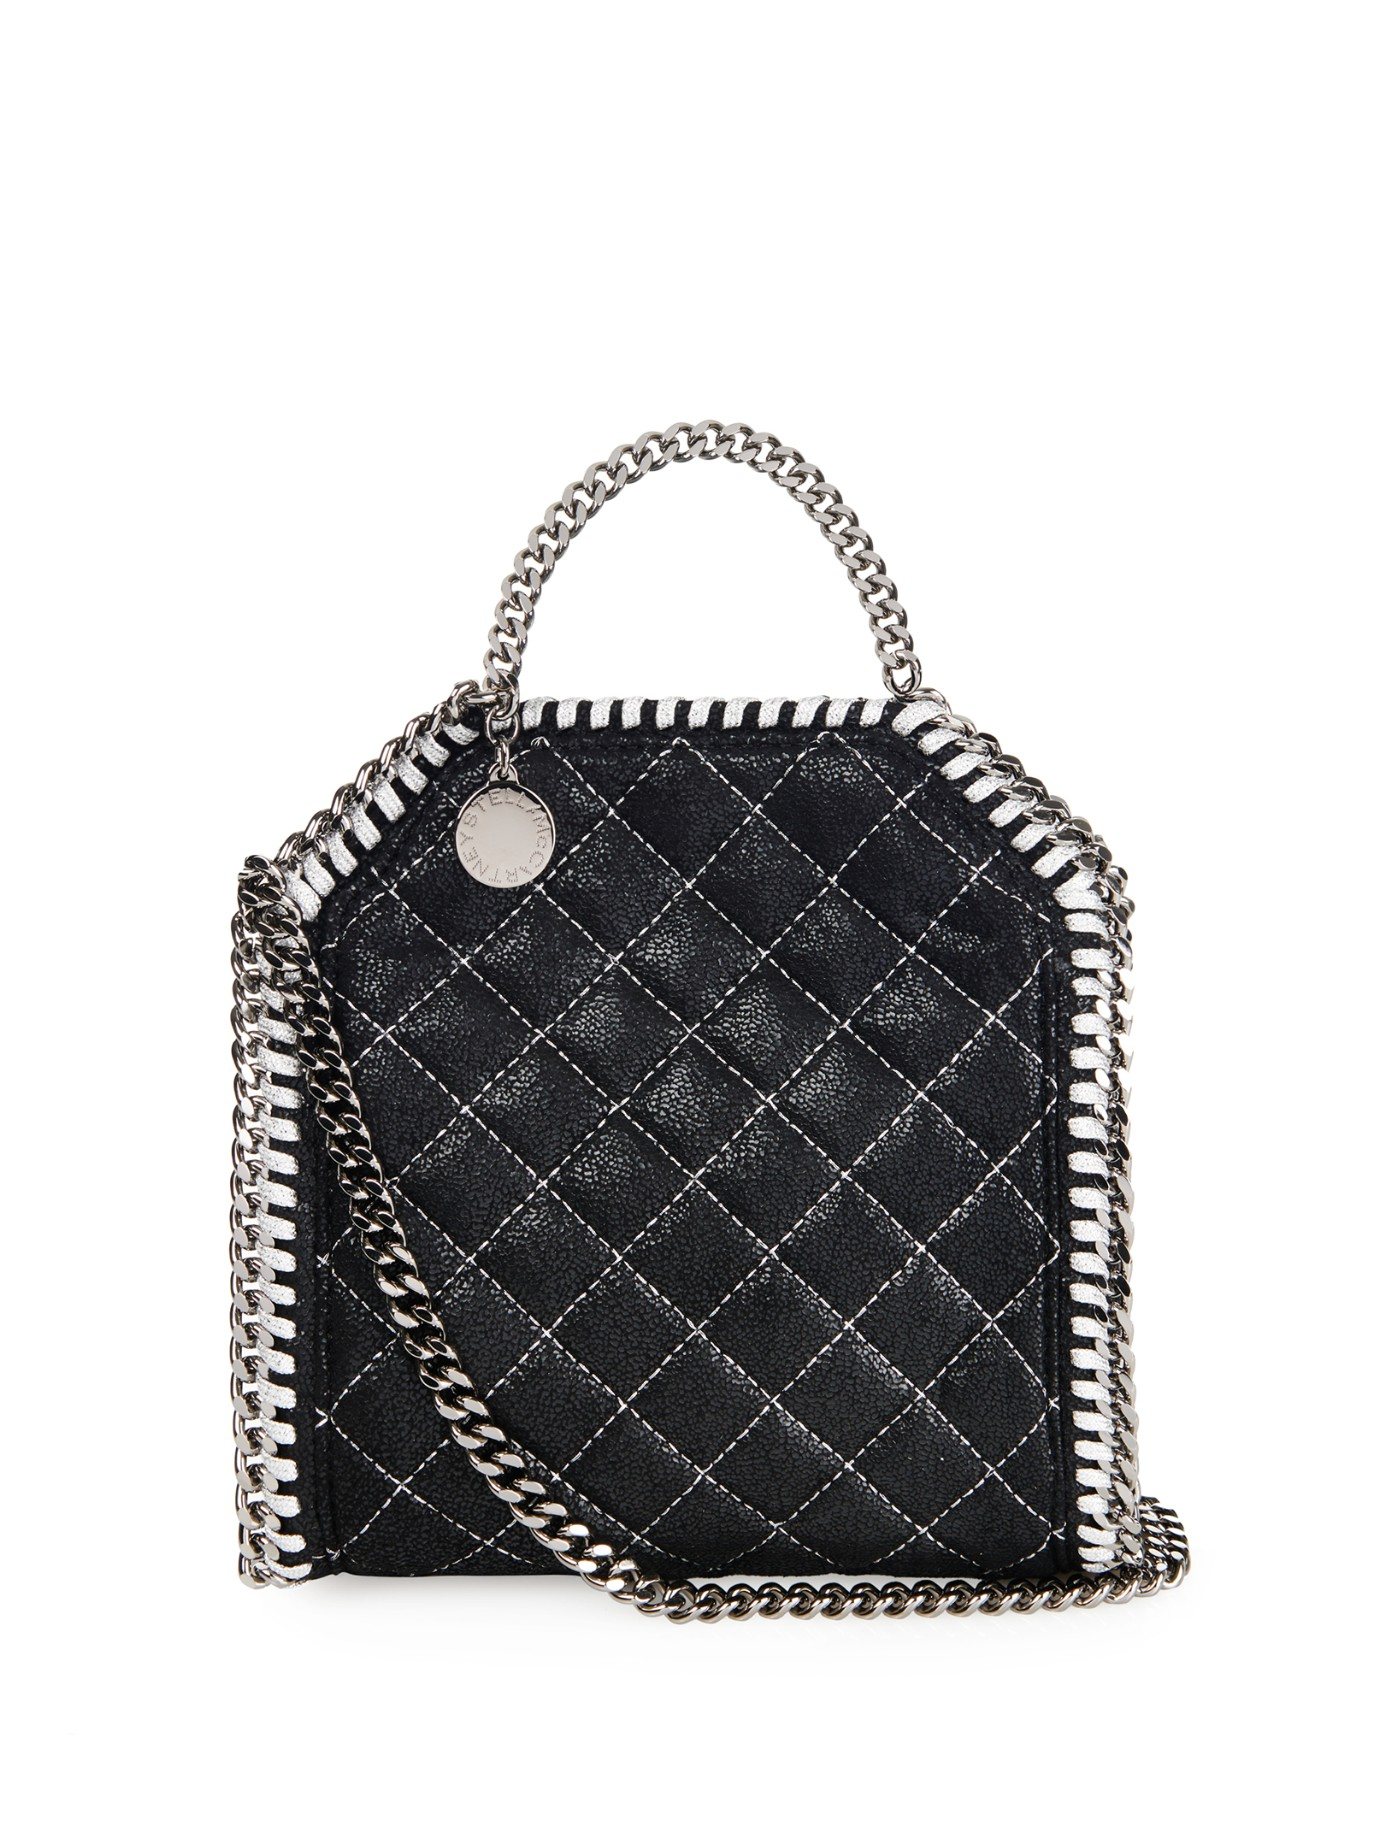 Lyst - Stella McCartney Falabella Tiny Quilted Cross-body Bag in Black d9874e6e132b7